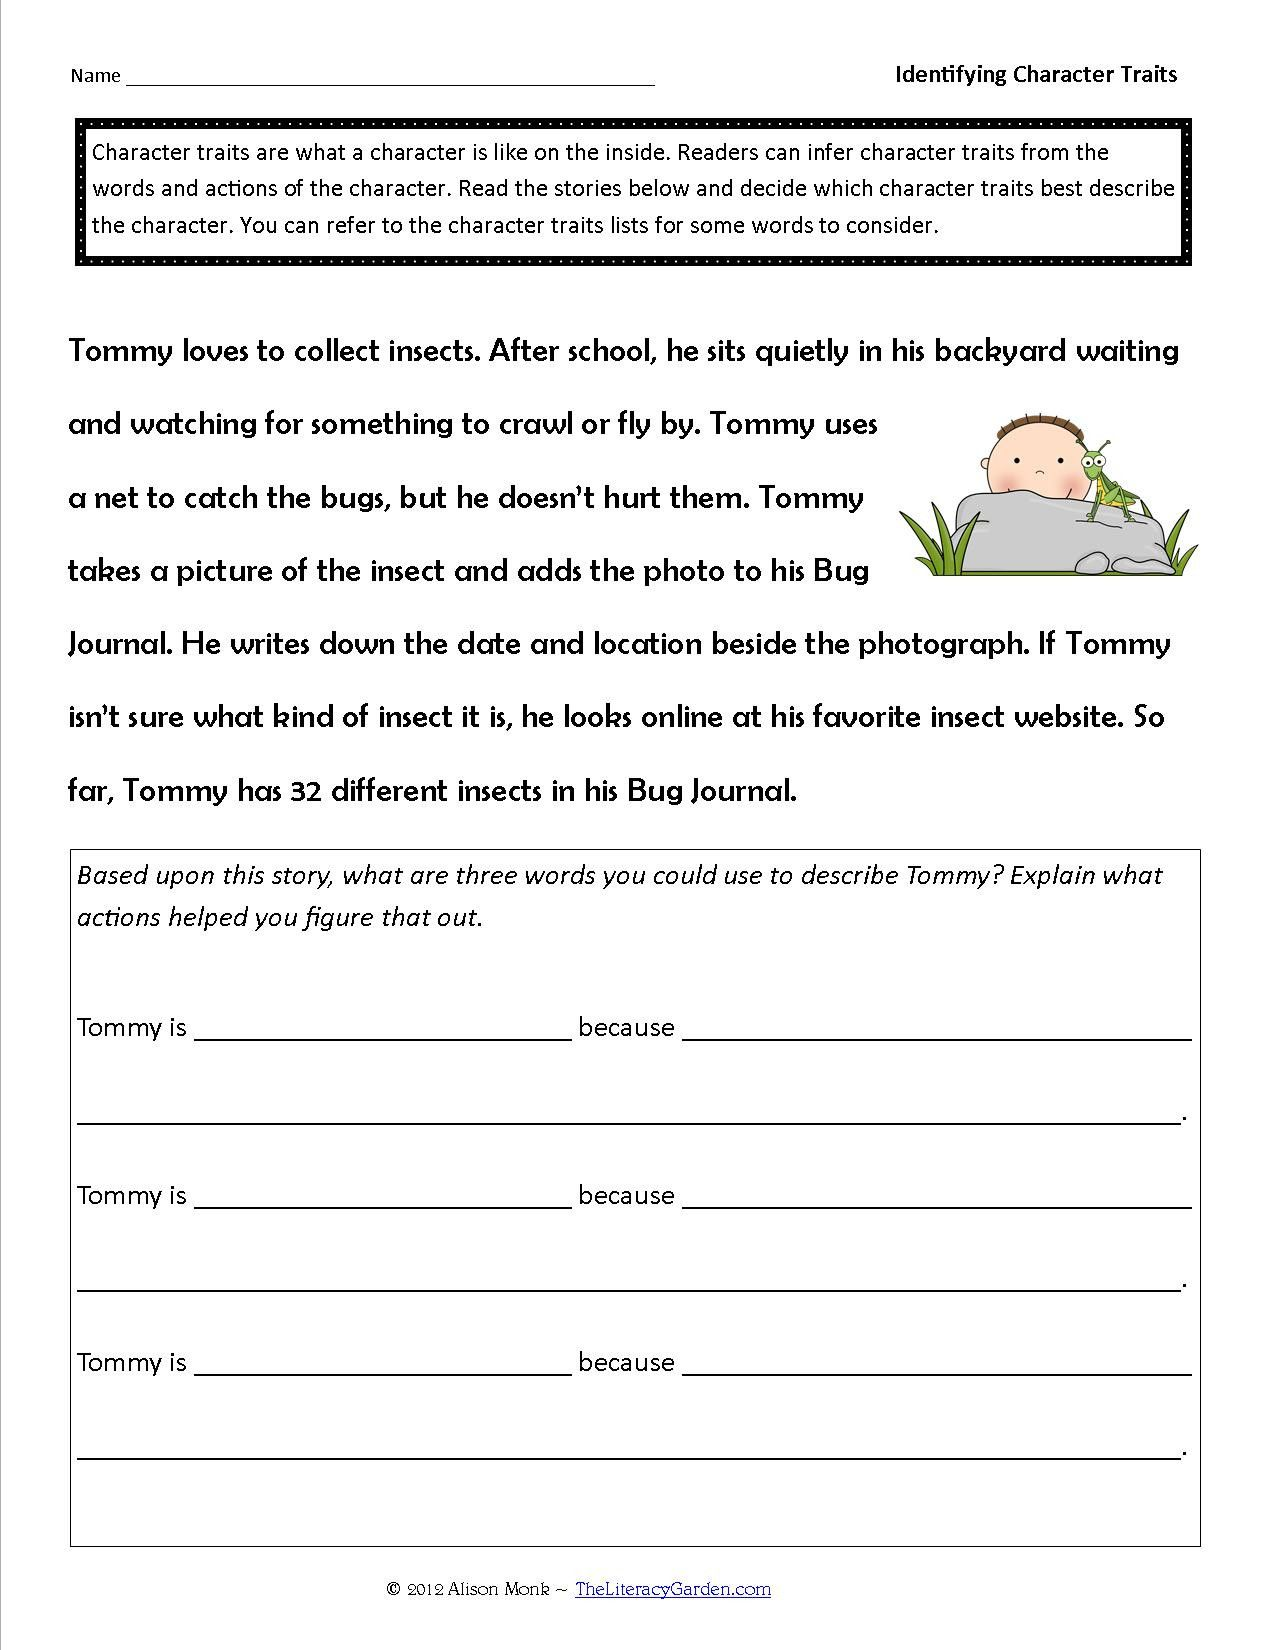 Character Traits Worksheet 2nd Grade   Character trait worksheets [ 1650 x 1275 Pixel ]